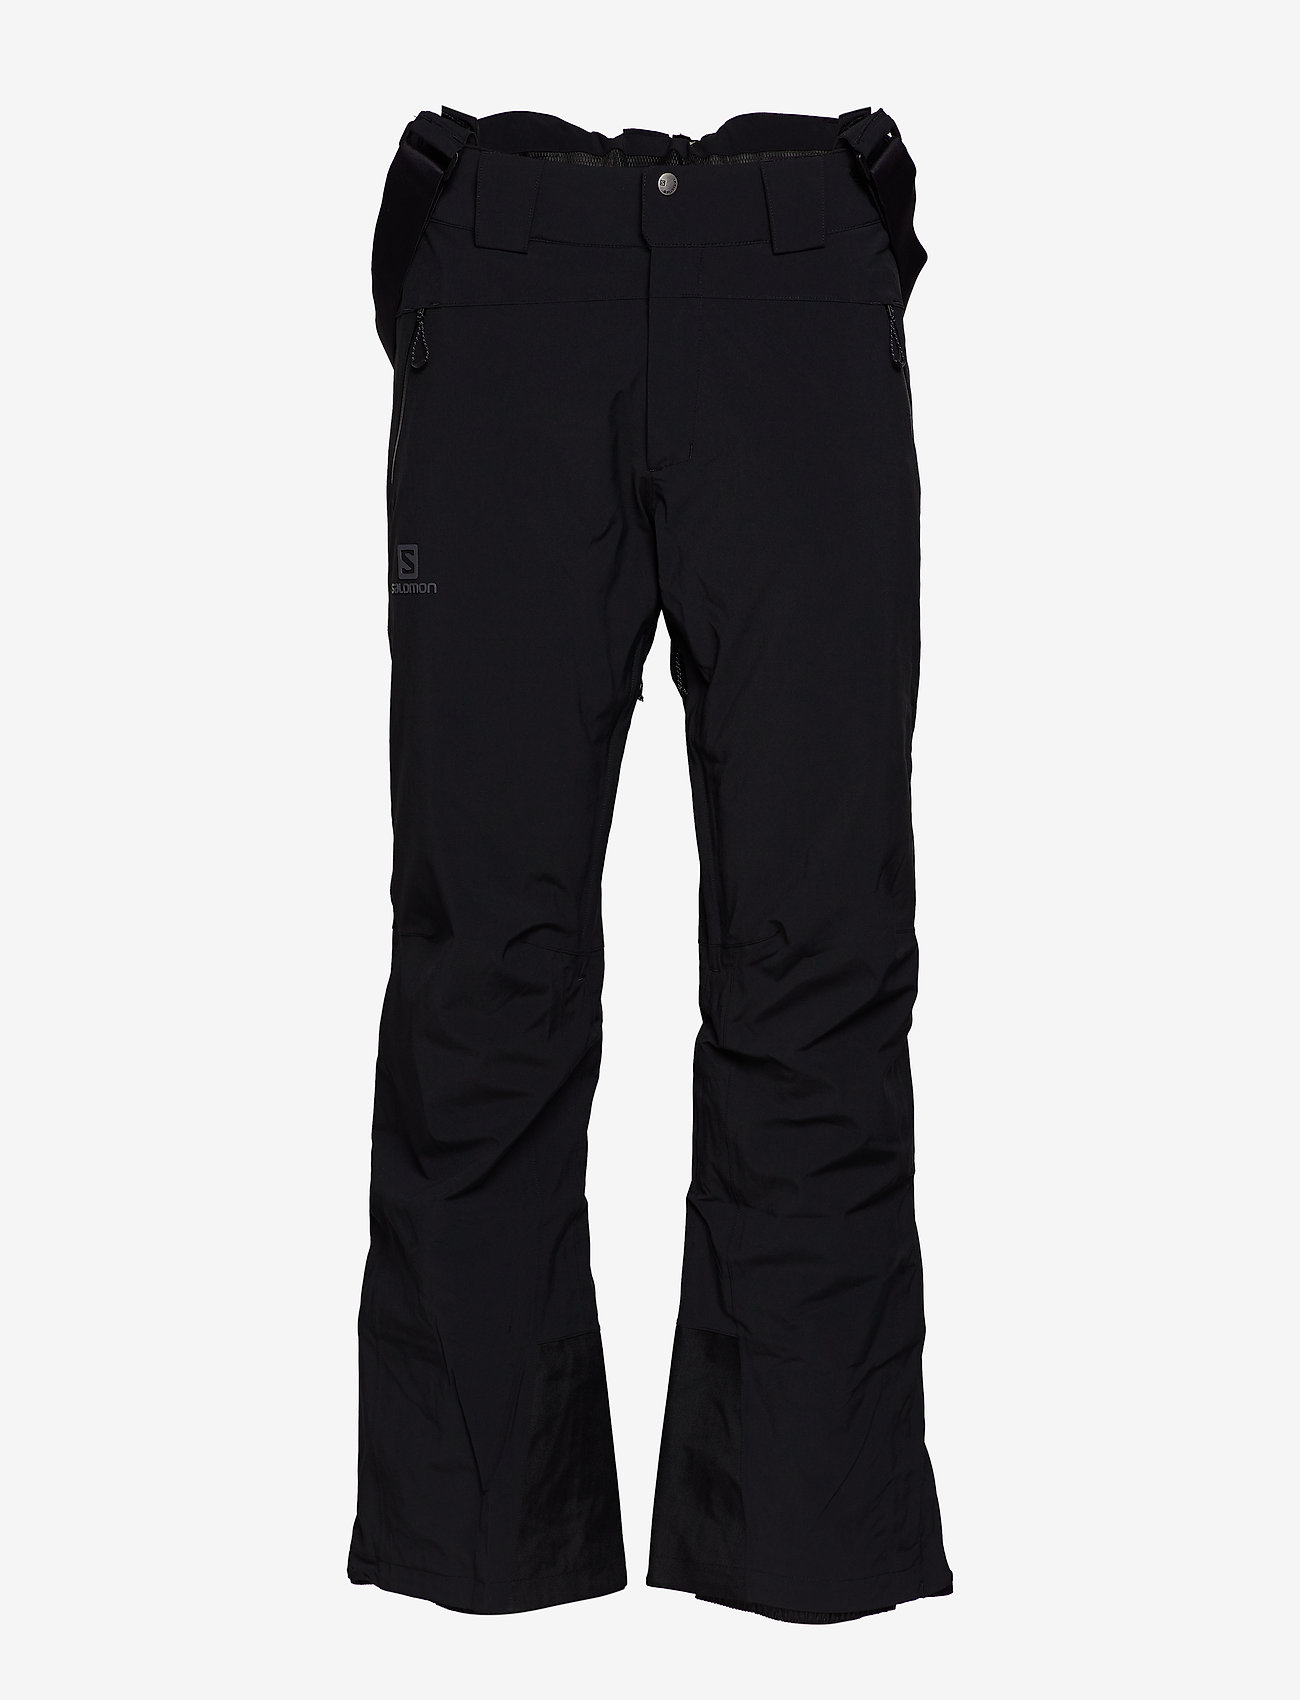 Salomon - ICEGLORY PANT M - skiing pants - black - 0